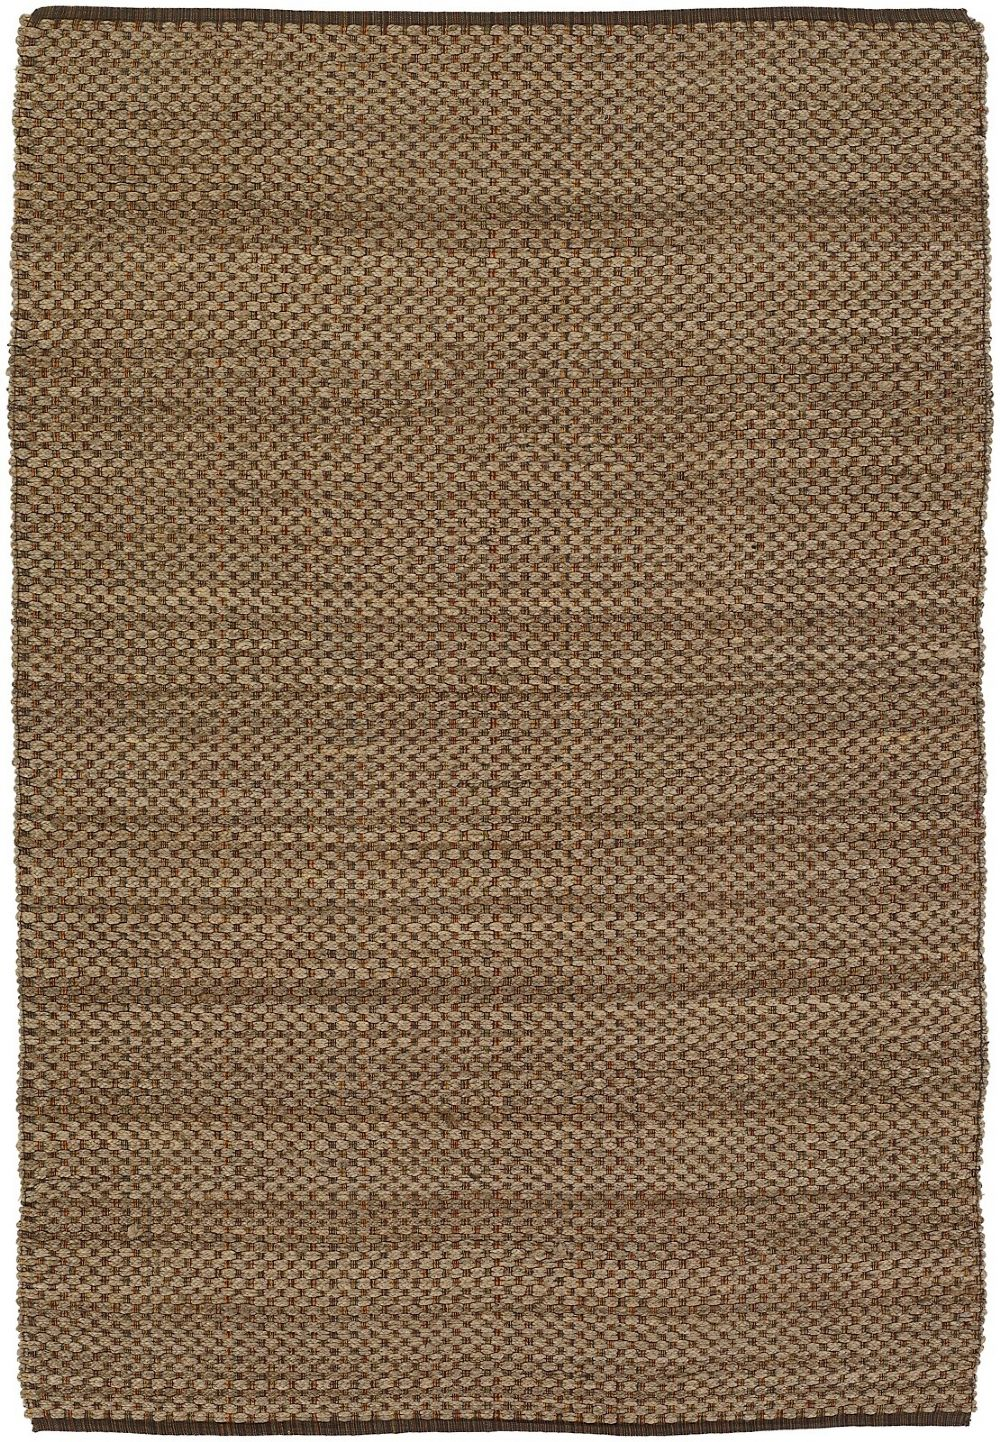 chandra hemson contemporary area rug collection